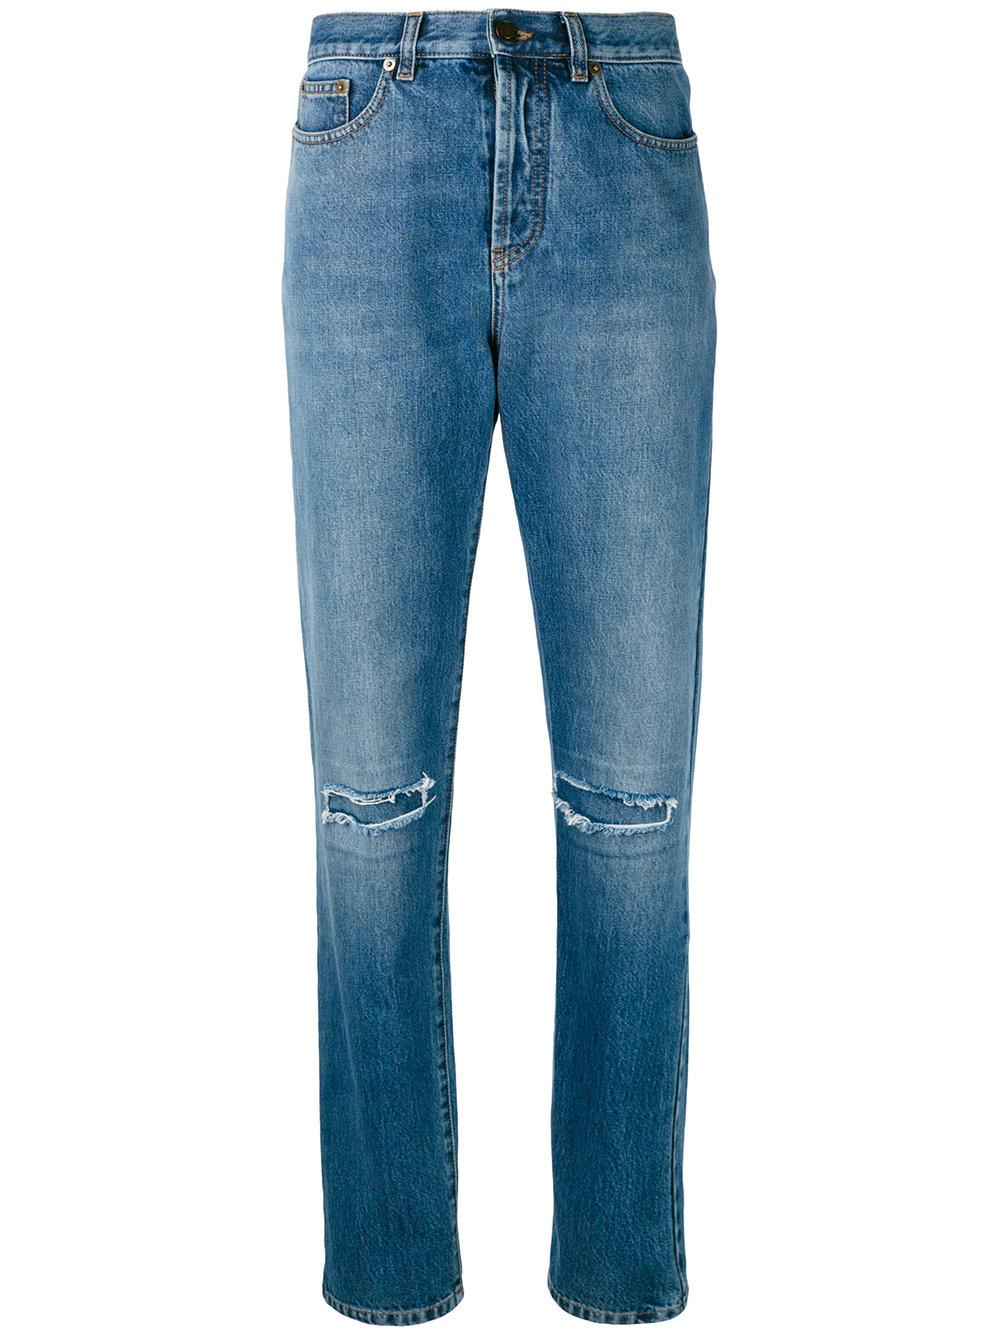 Saint laurent Slim Fit Knee Hole Jeans in Blue | Lyst